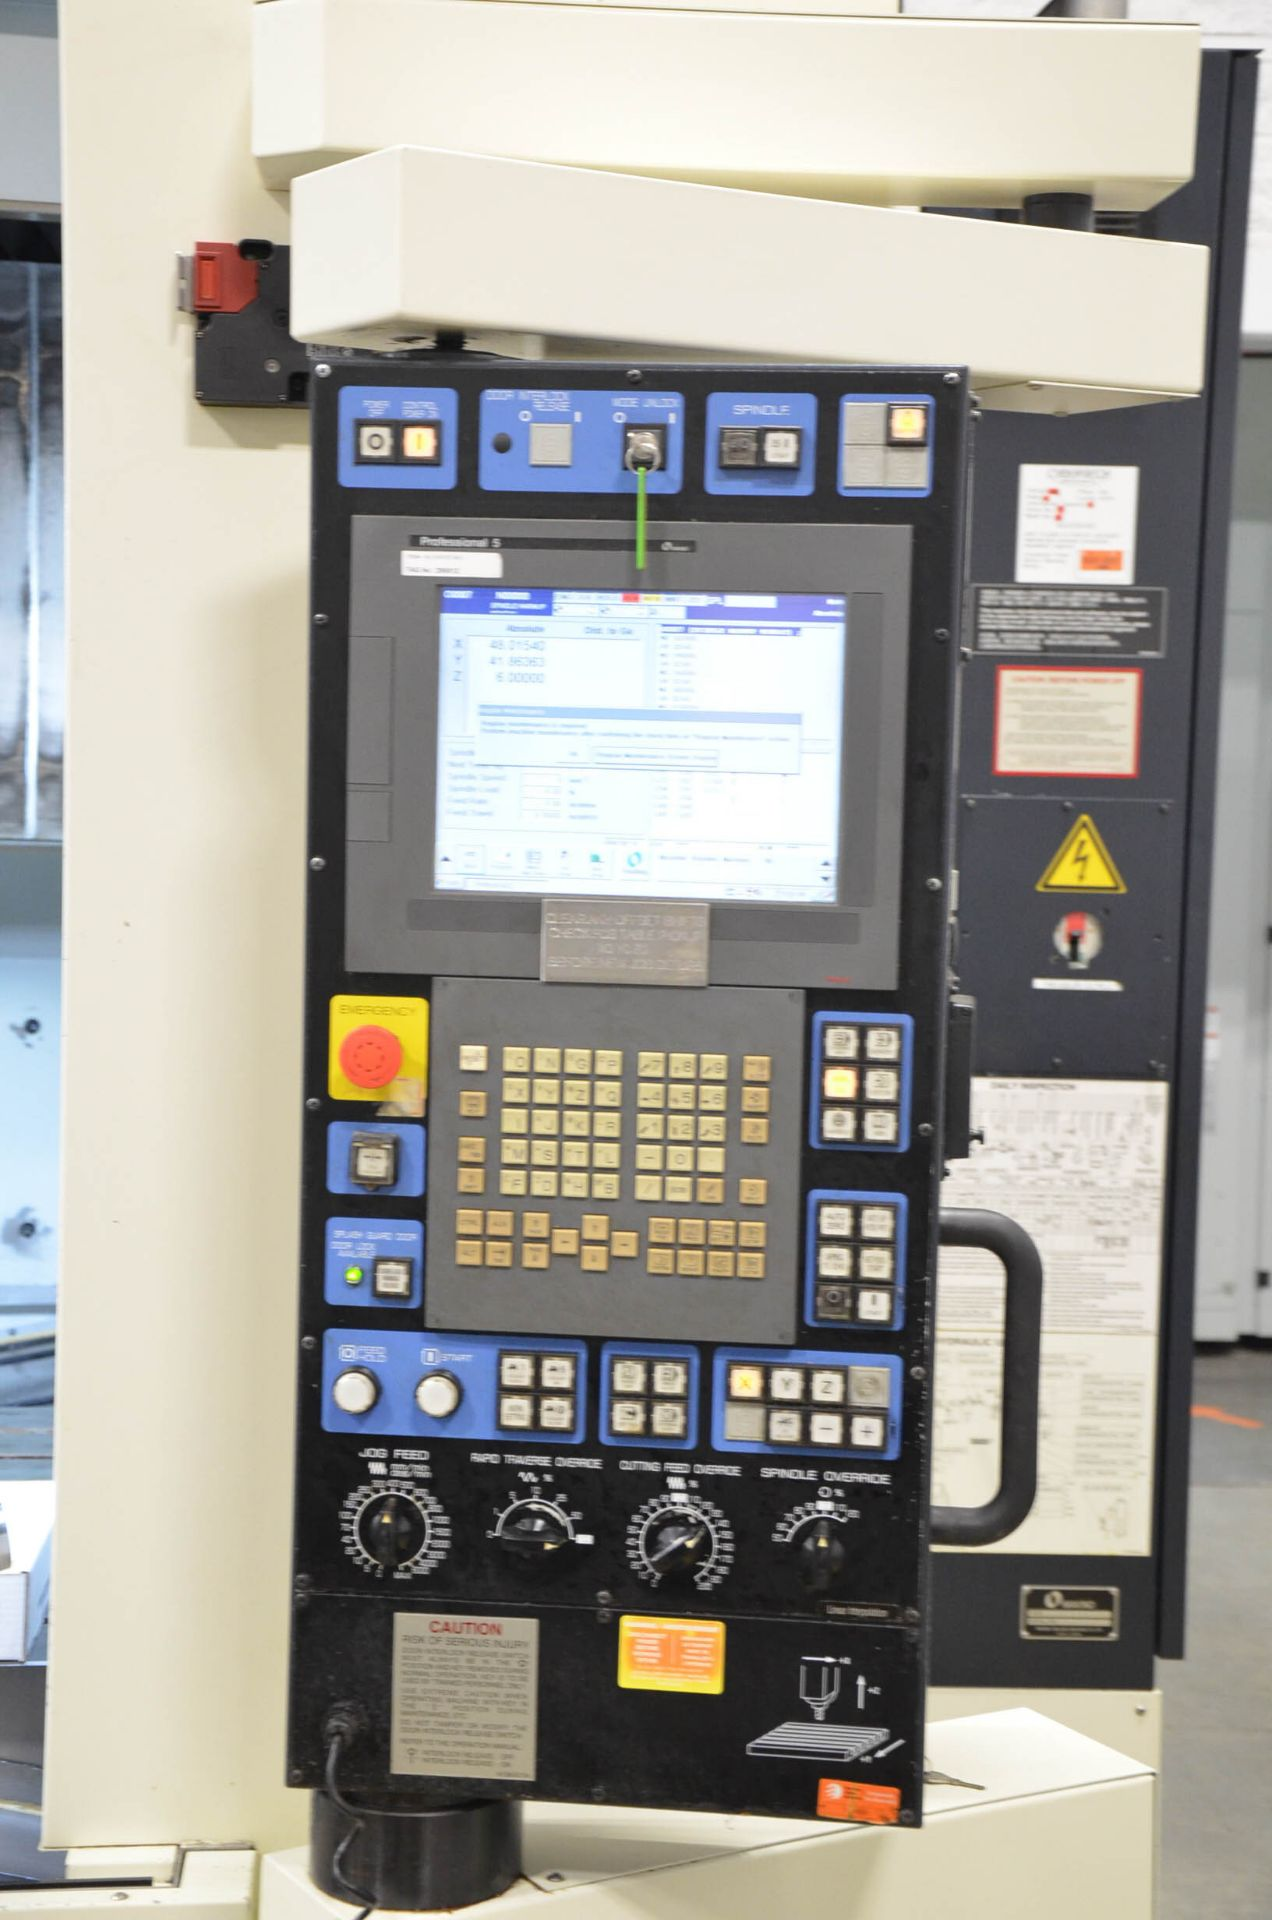 MAKINO (2008) V99L(#50) CNC VERTICAL MACHINING CENTER WITH MAKINO PROFESSIONAL 5 CNC CONTROL, 39. - Image 12 of 12